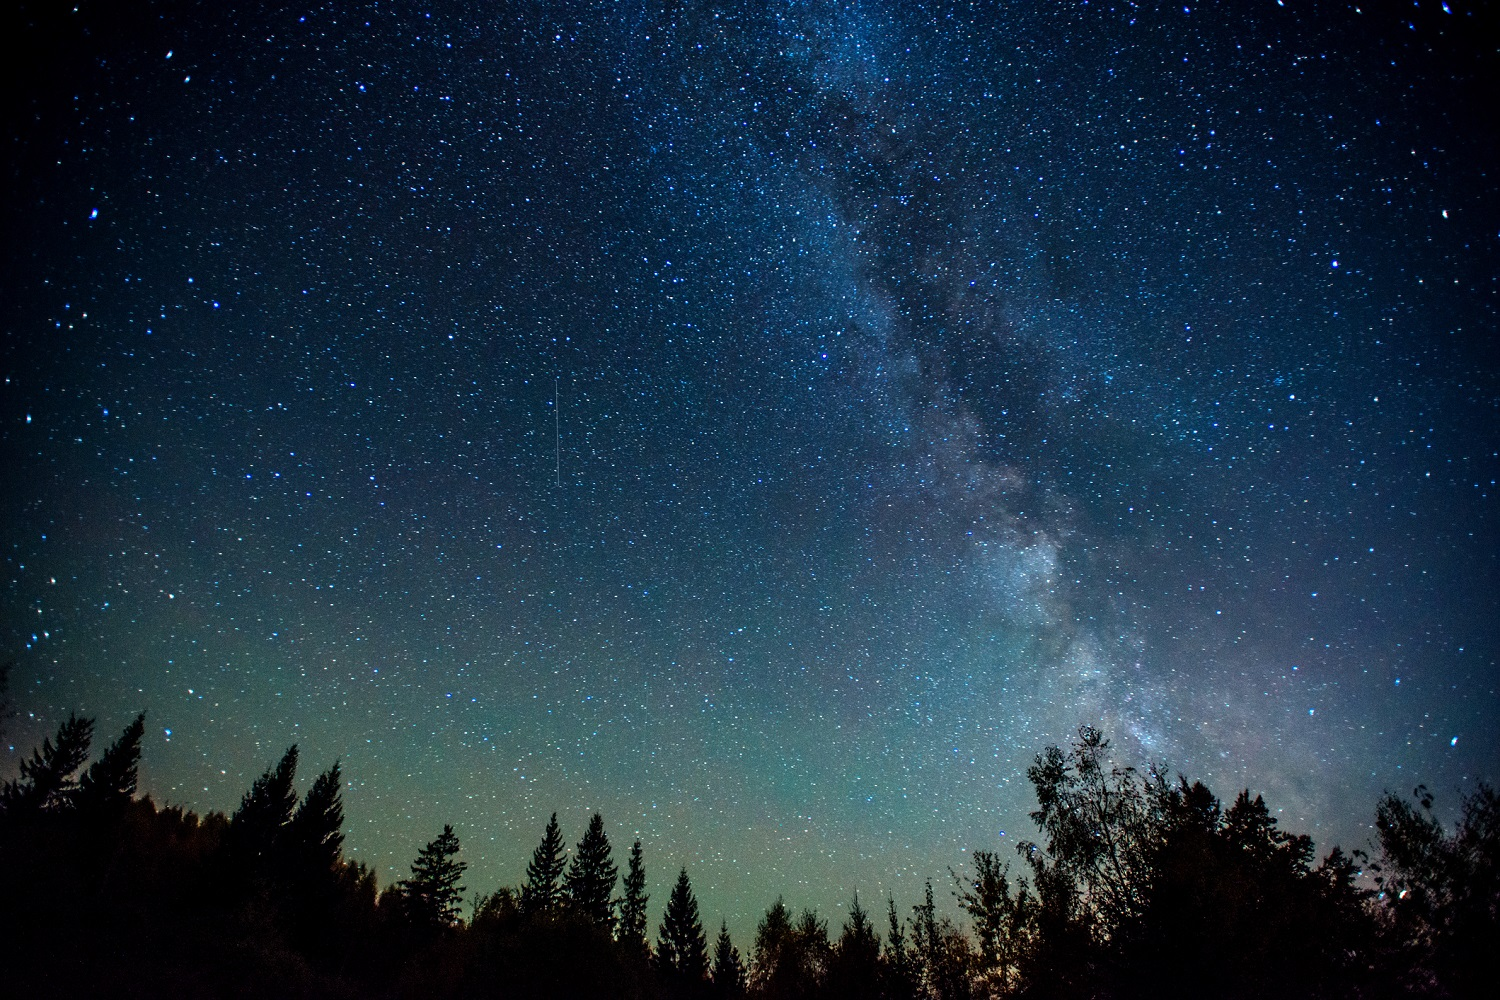 Learn about all the exciting events taking place at this year's Bryce Canyon Astronomy Festival.